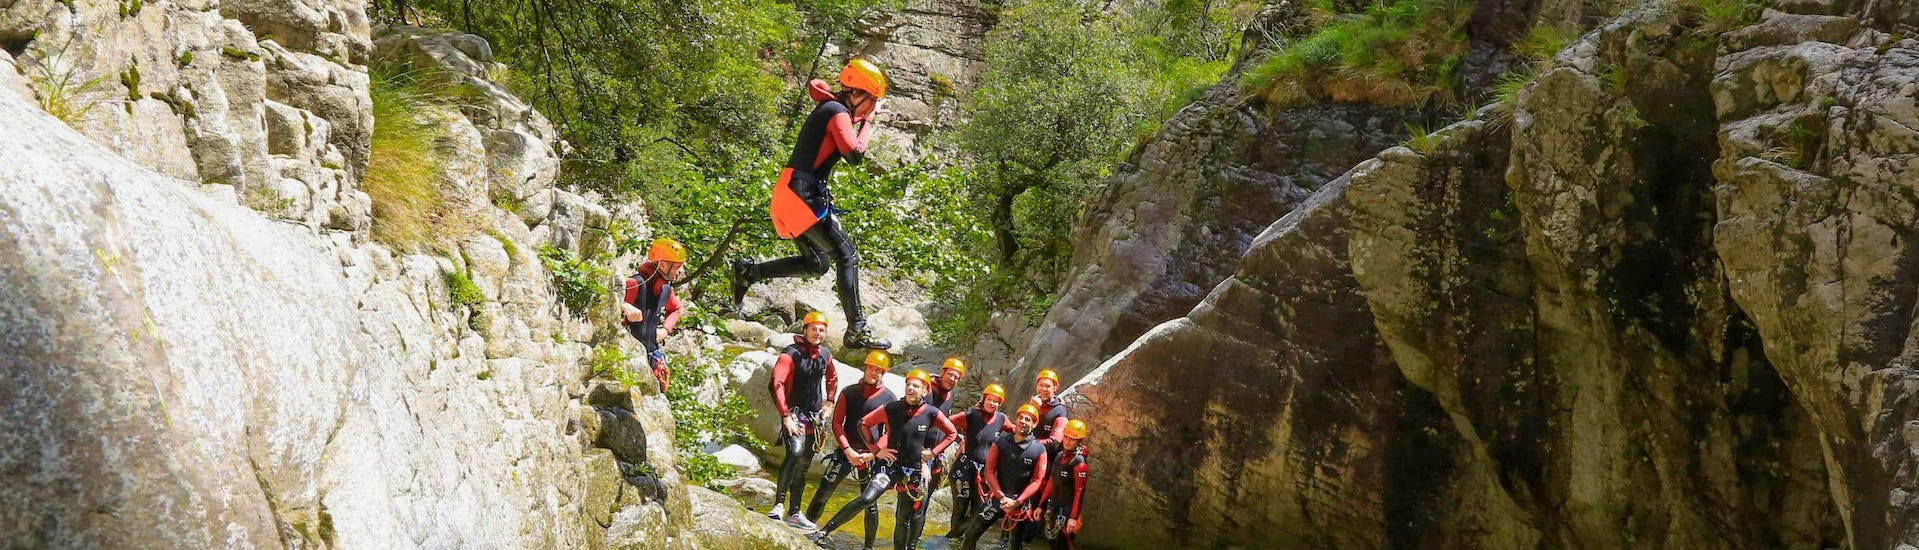 A tourist is jumping in the Richiusa canyon during his activity canyoning with reves de cimes.